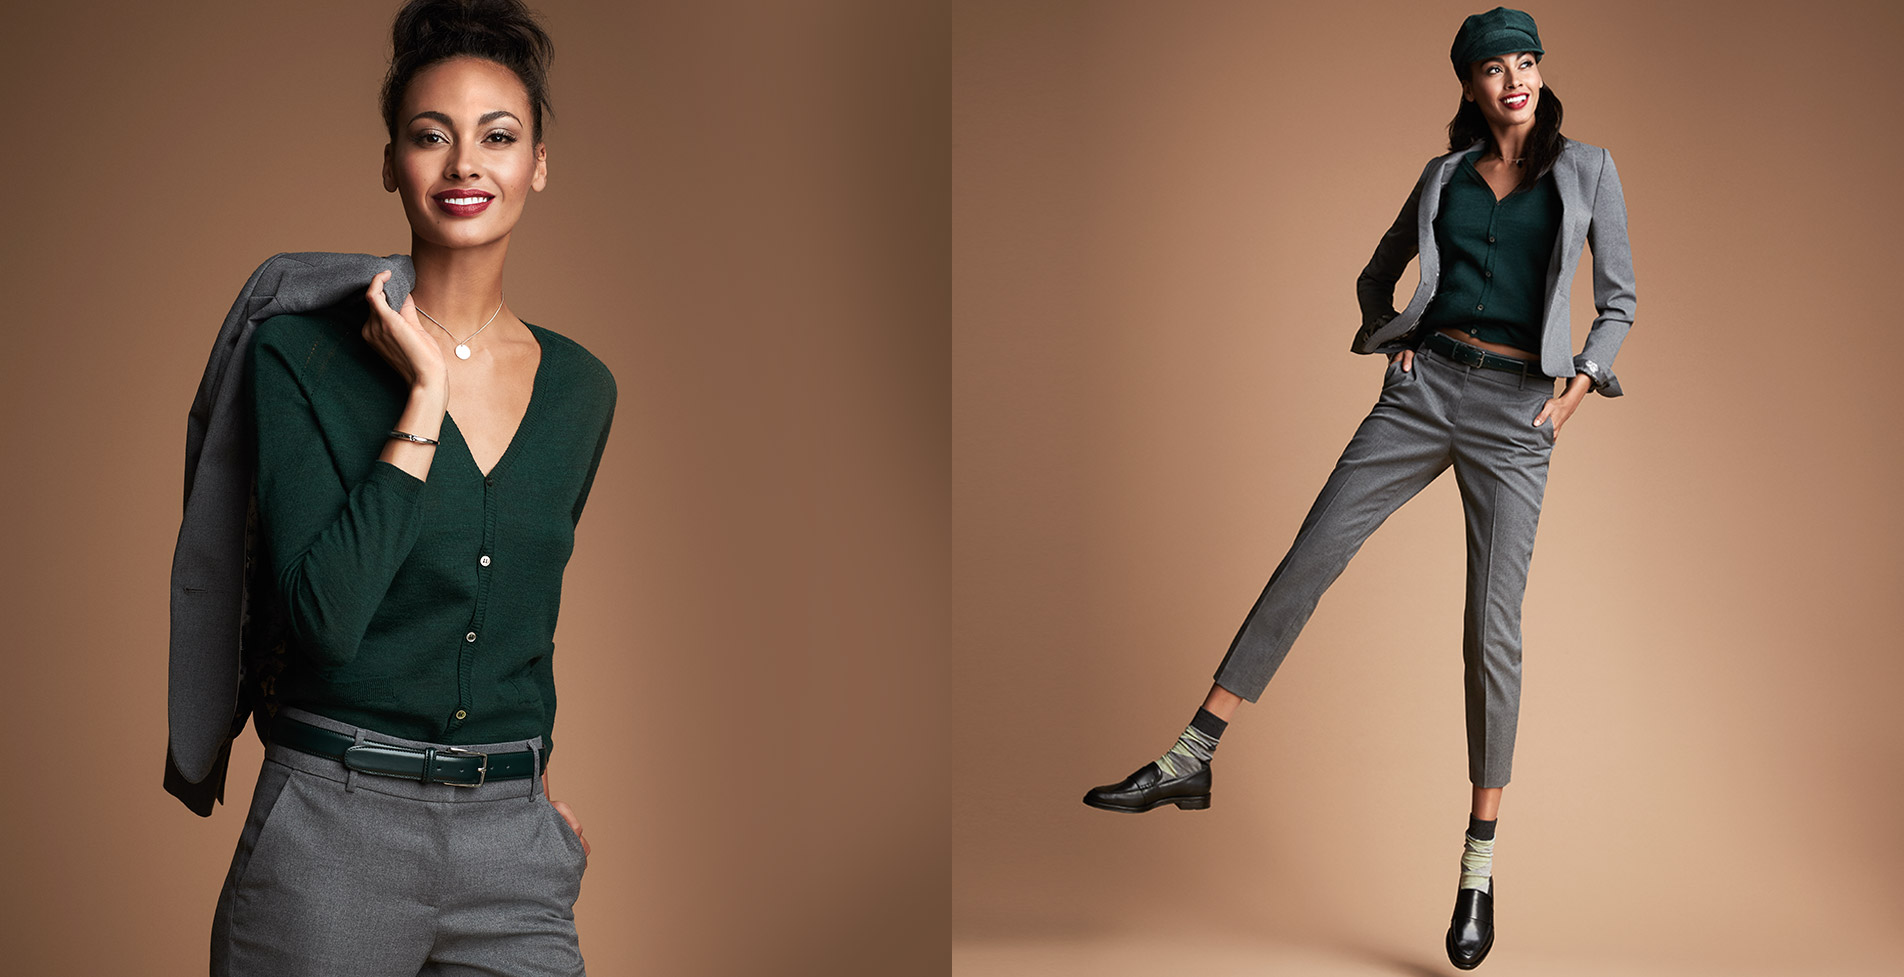 Fall for our stylish suits and mix things up for maximum personal style.